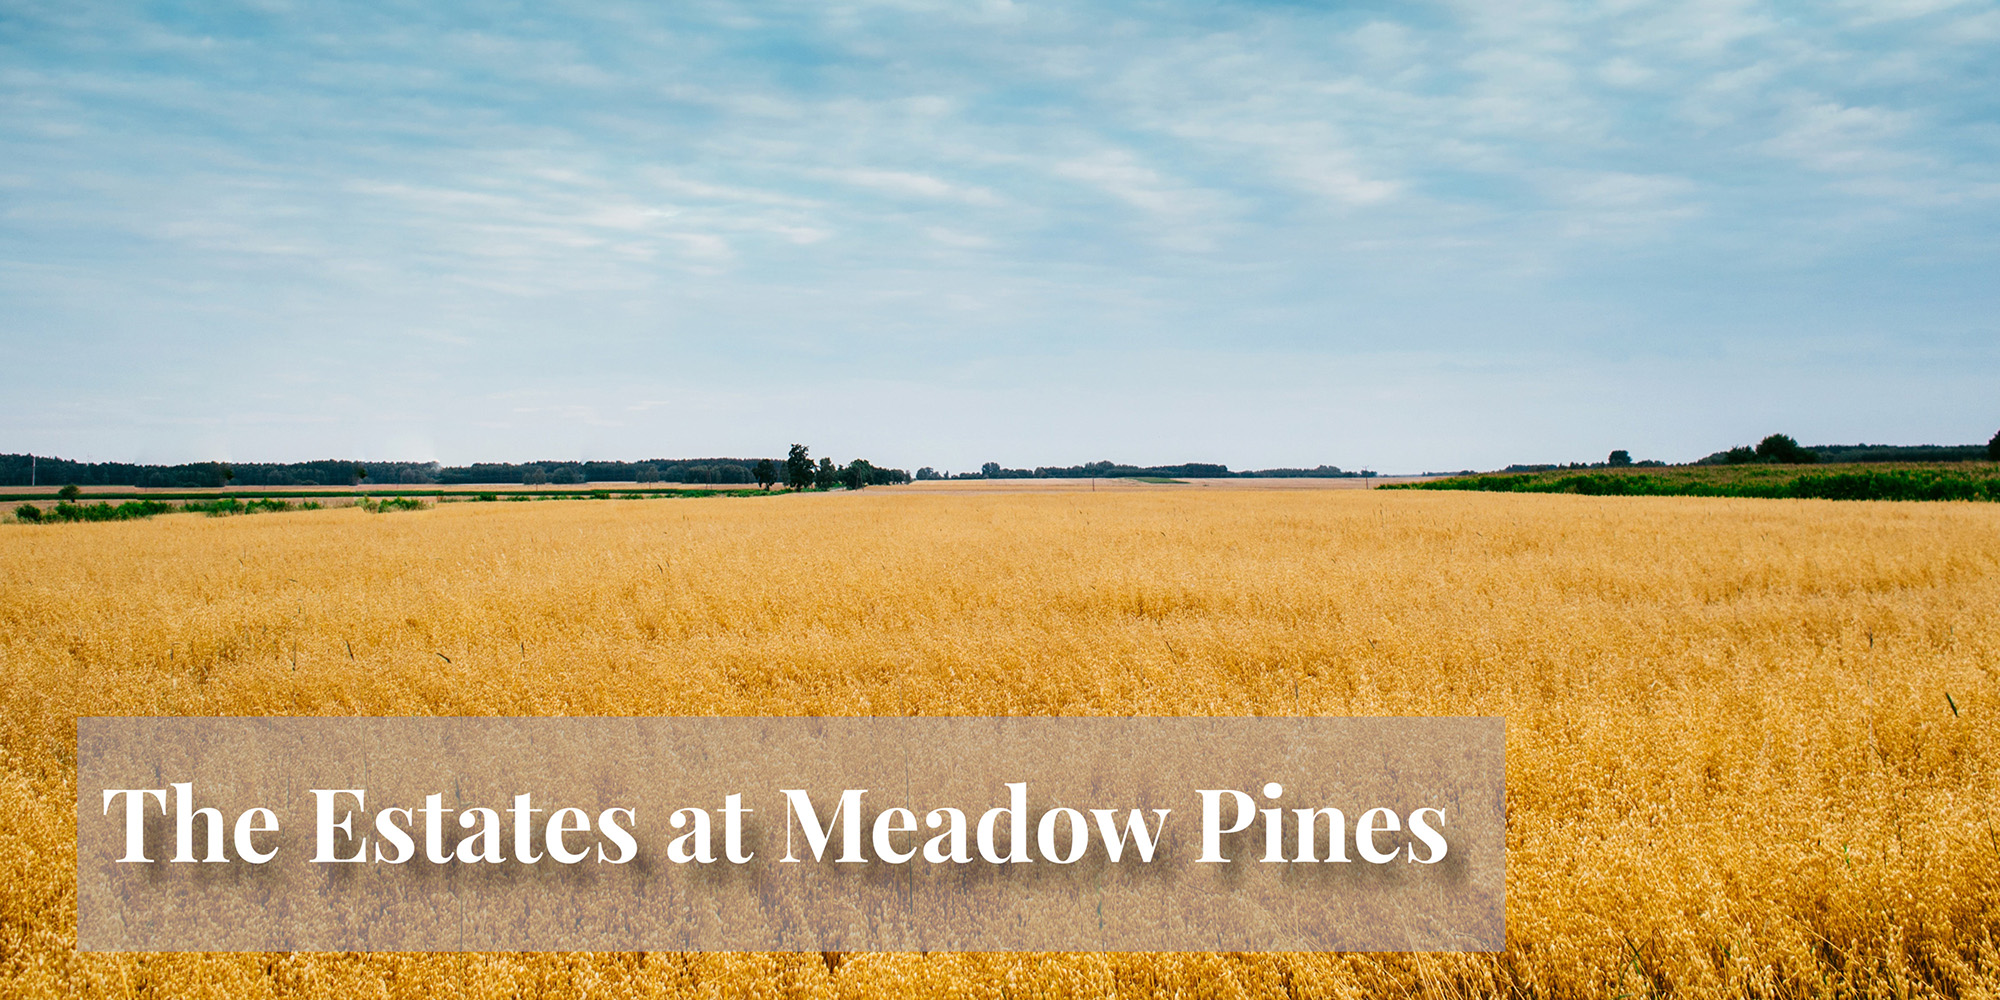 The Estates at Meadow Pines Community by Homes by Deesign